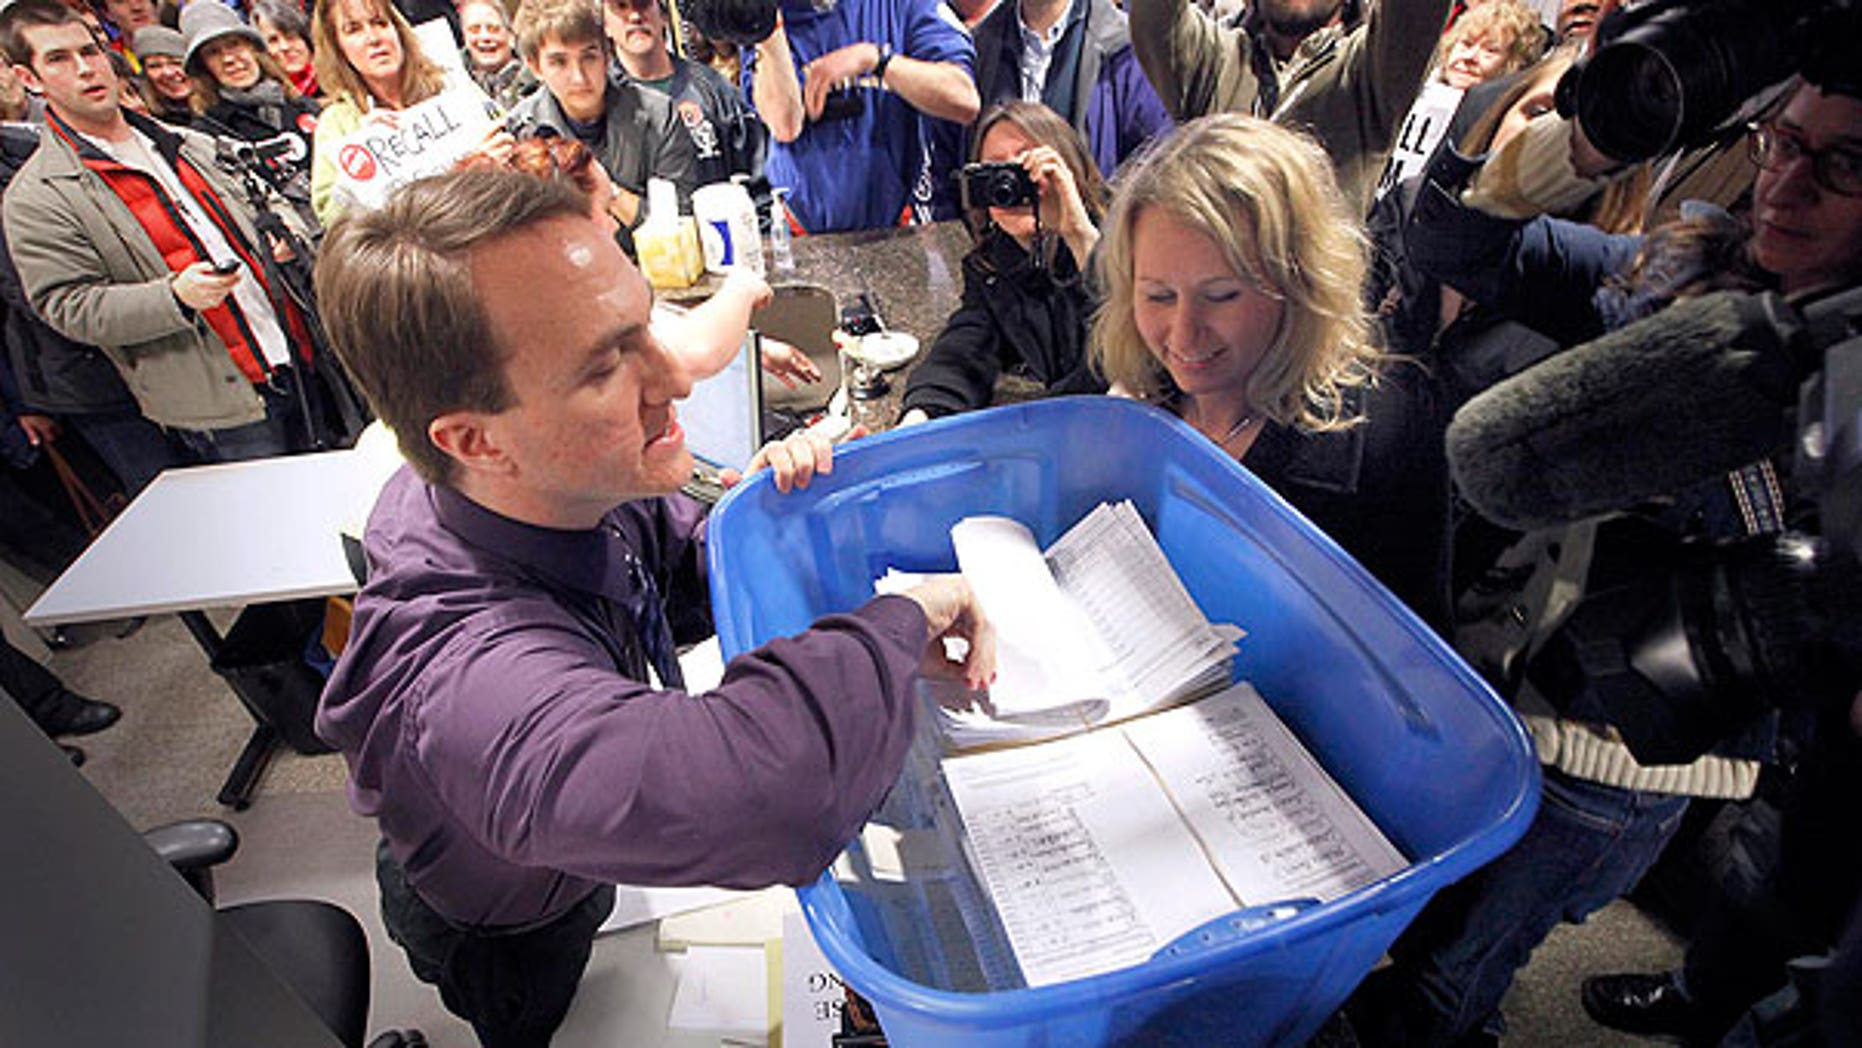 In this April 1, 2011 file photo, David Buerger, an elections specialist with the Wisconsin Government Accountability Board, inspects recall petitions filed against Sen. Dan Kapanke, R-LaCrosse, in his Madison, Wis. office.